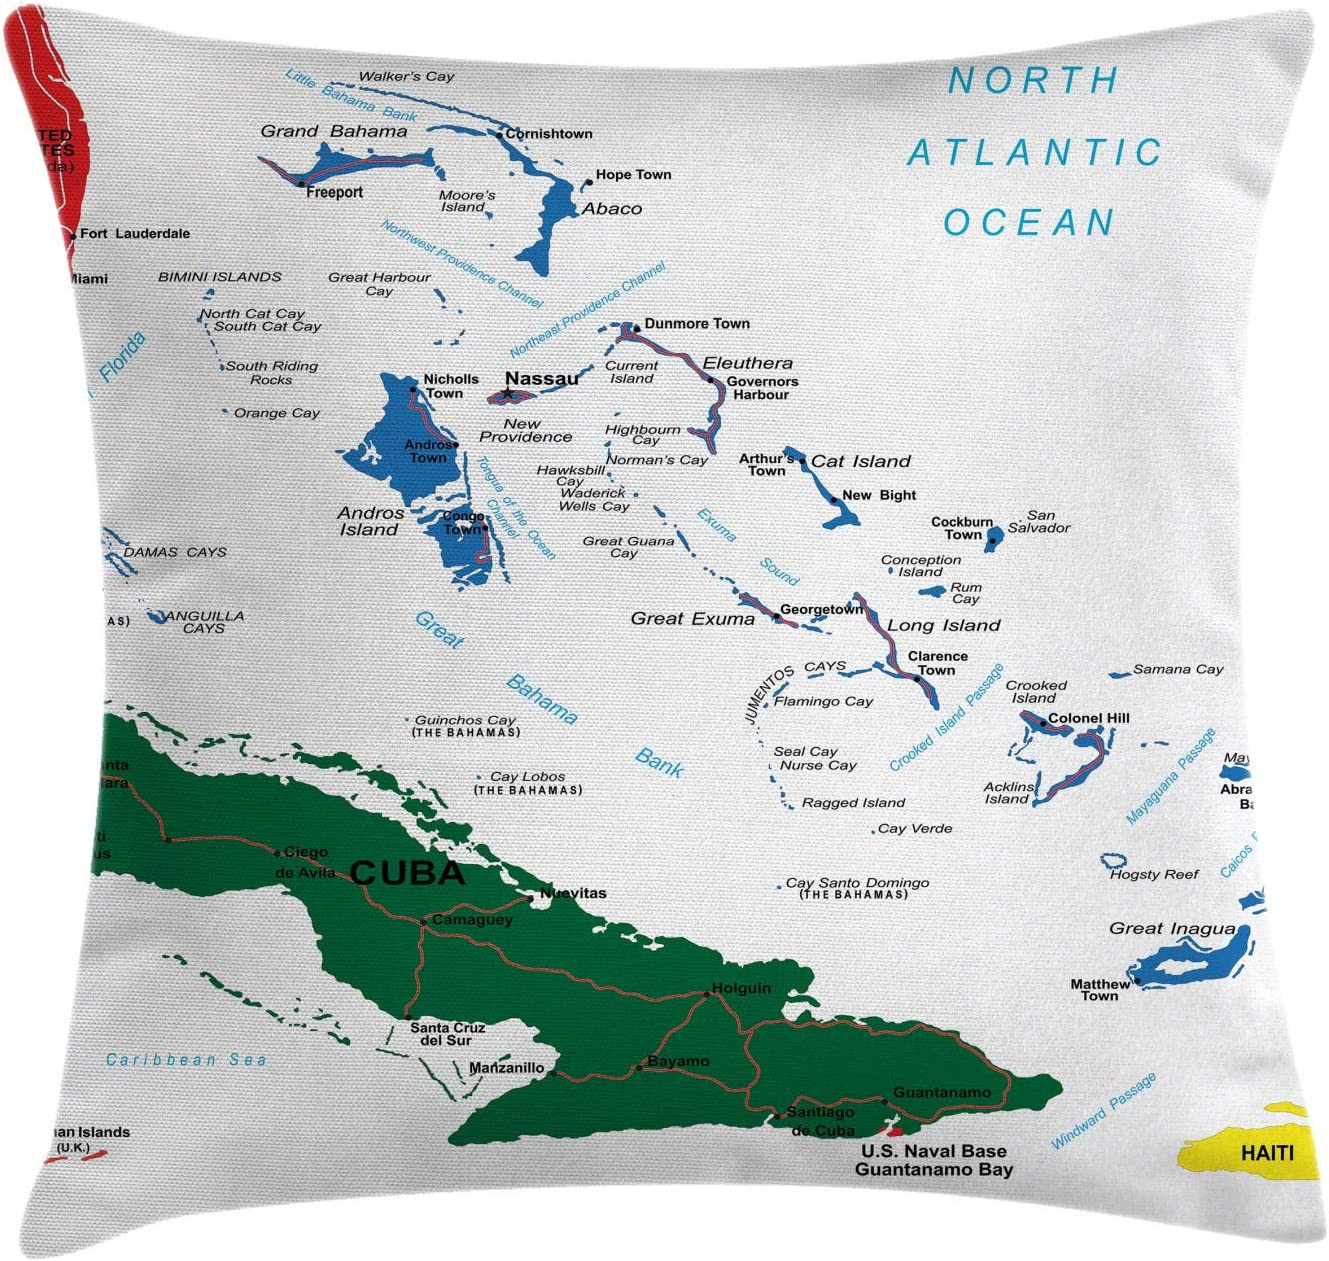 Amazon Com Ambesonne Wanderlust Throw Pillow Cushion Cover Bahamas Map Beach Cayman Islands Geography District Holiday Tourism Decorative Square Accent Pillow Case 26 X 26 Green Blue Home Kitchen